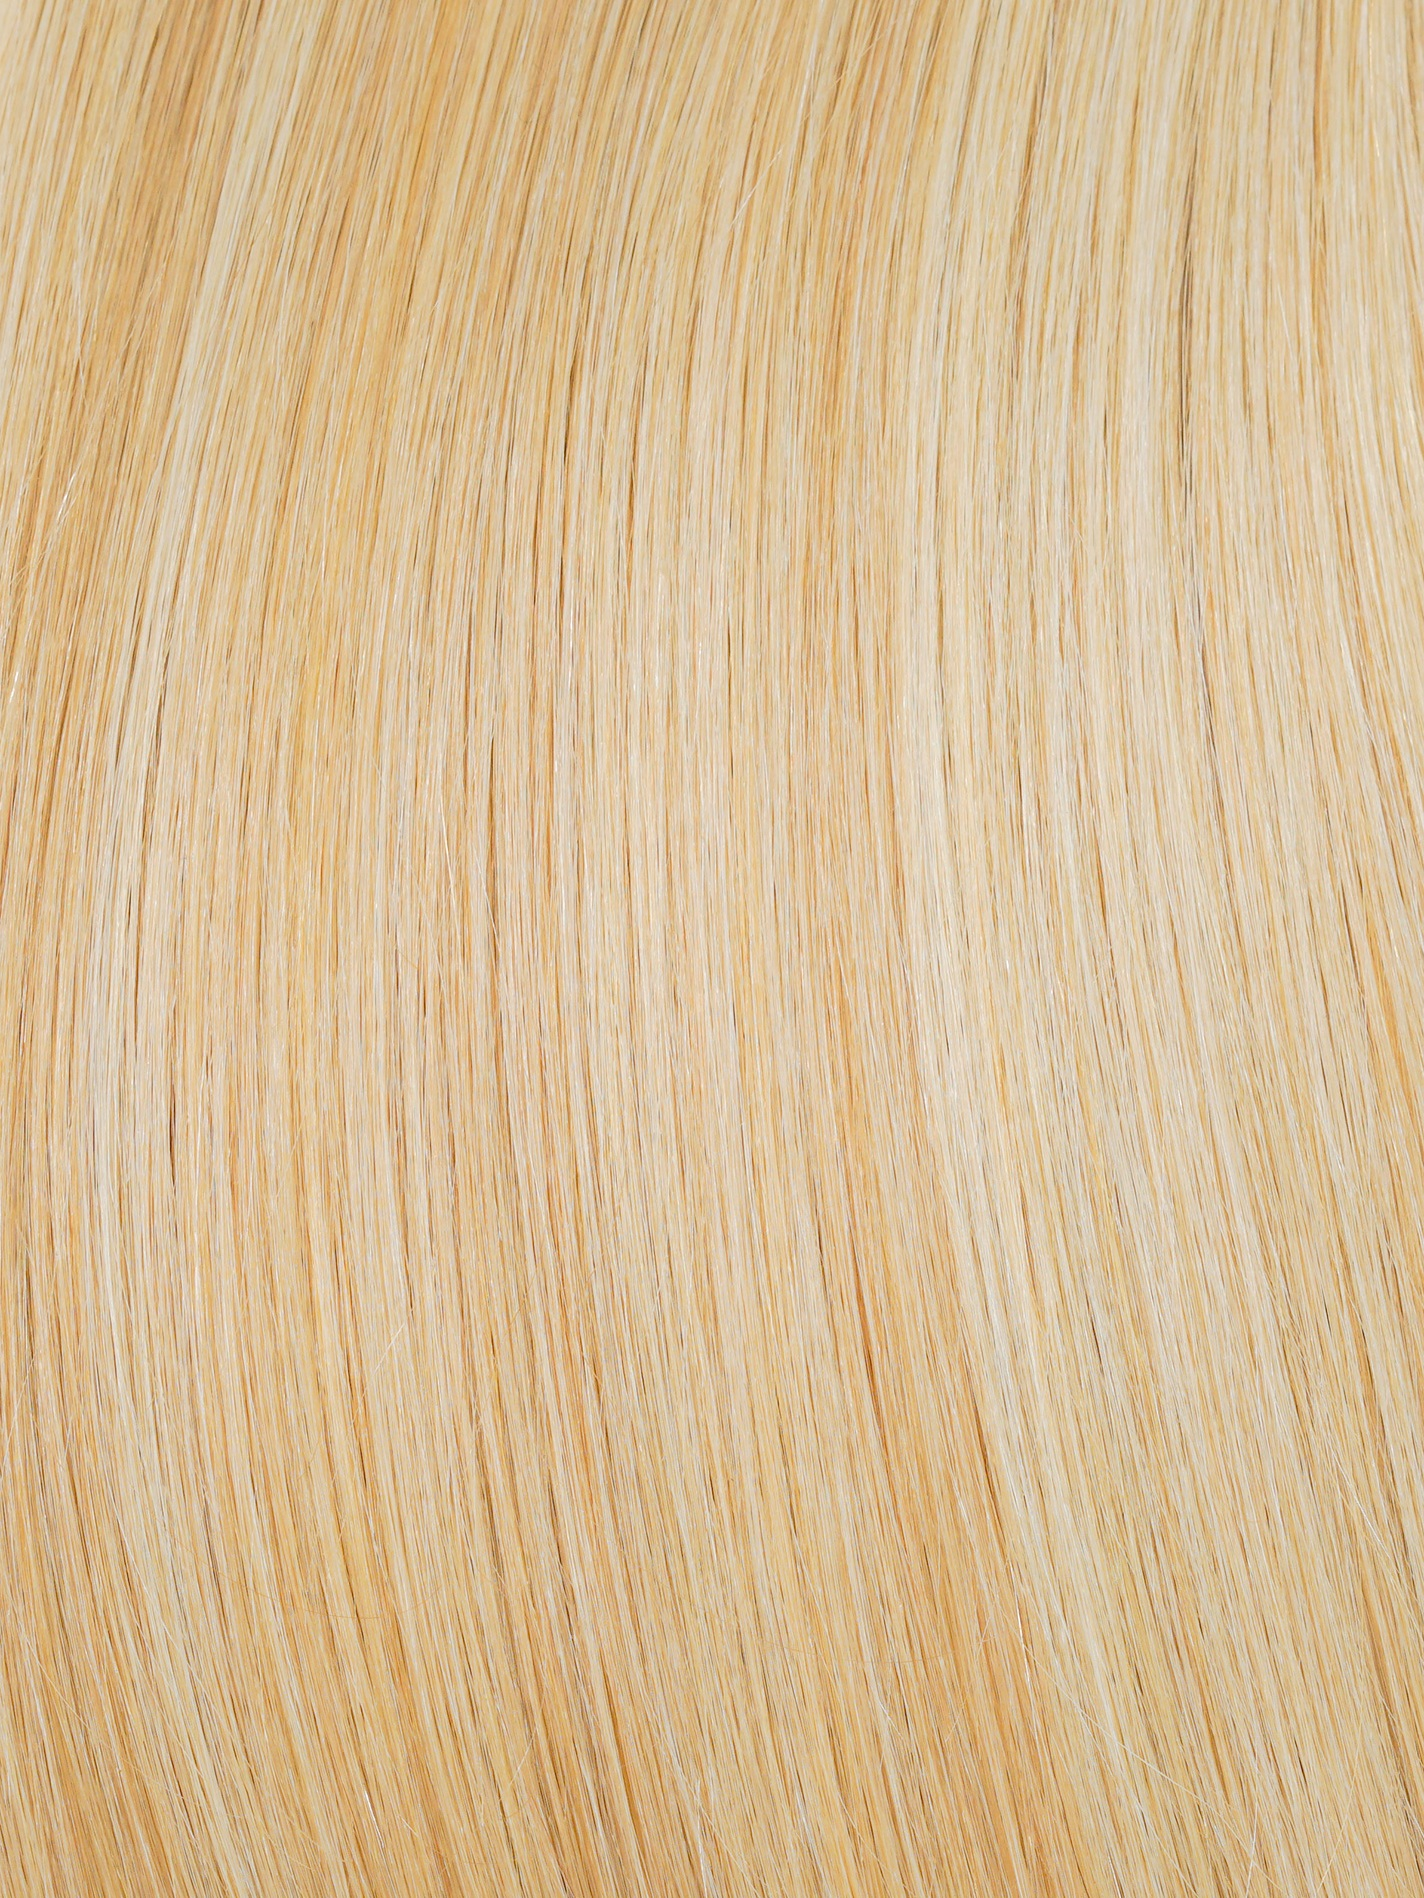 GOLDEN BLONDE #14/22 - A warm mix of gorgeous glittering gold locks and icy platinum strands make for a unique combination of effortless glamour.